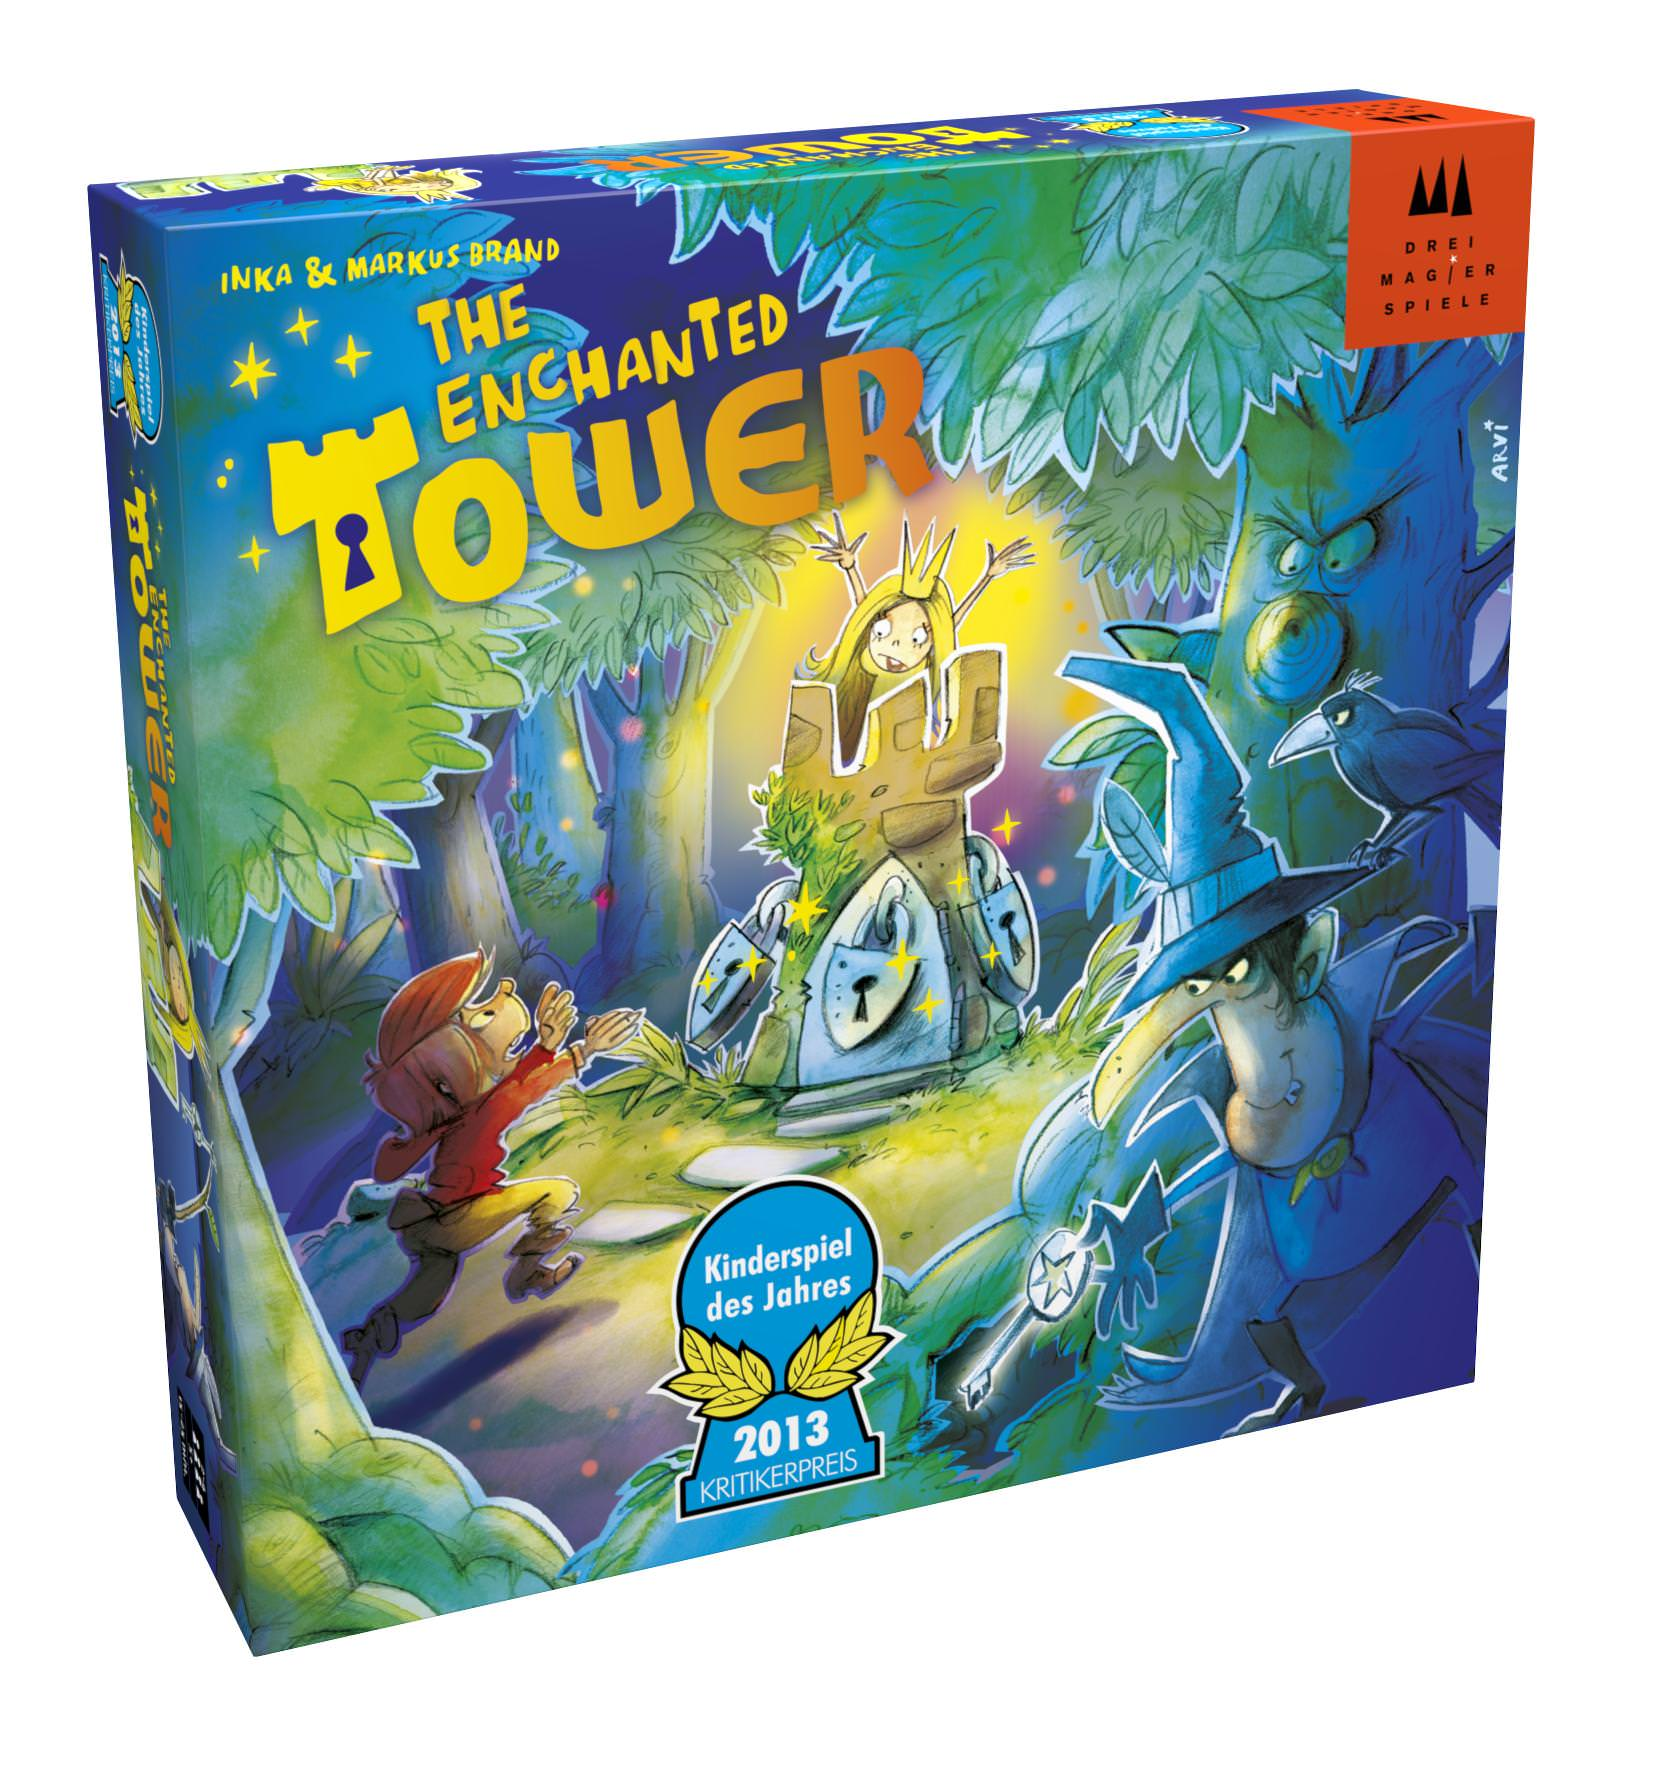 The Enchanted Tower - What are the best board games for kids